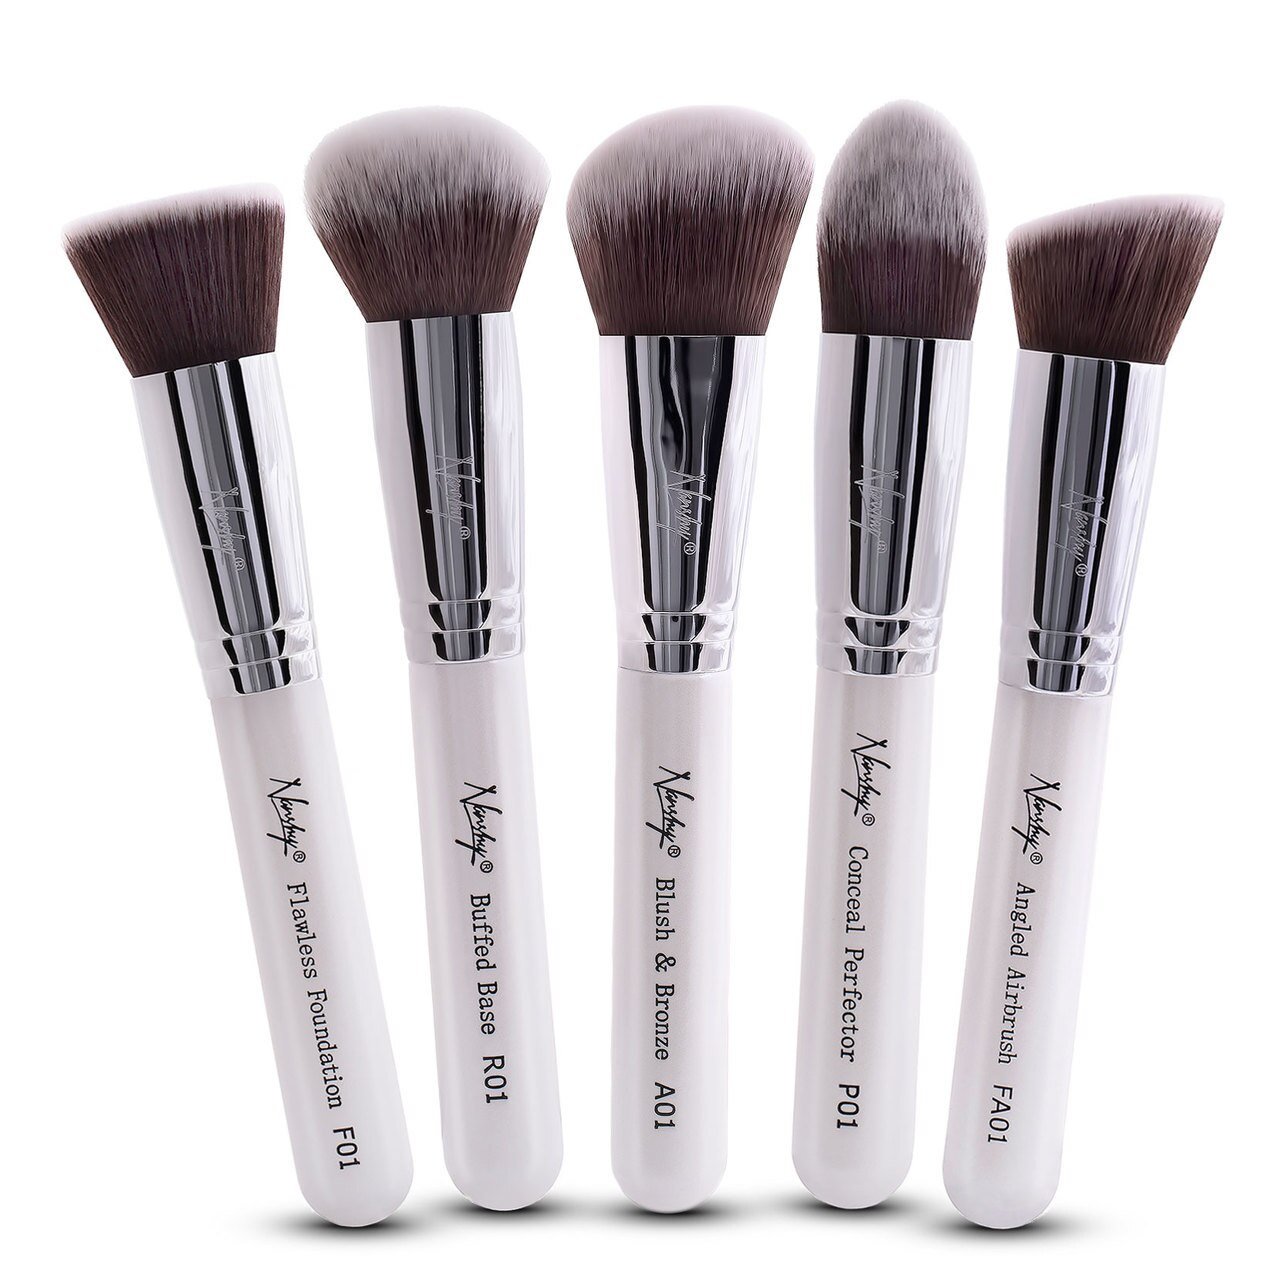 Nanshy Gobsmack Glamorous 5 Piece Brush Collection - White